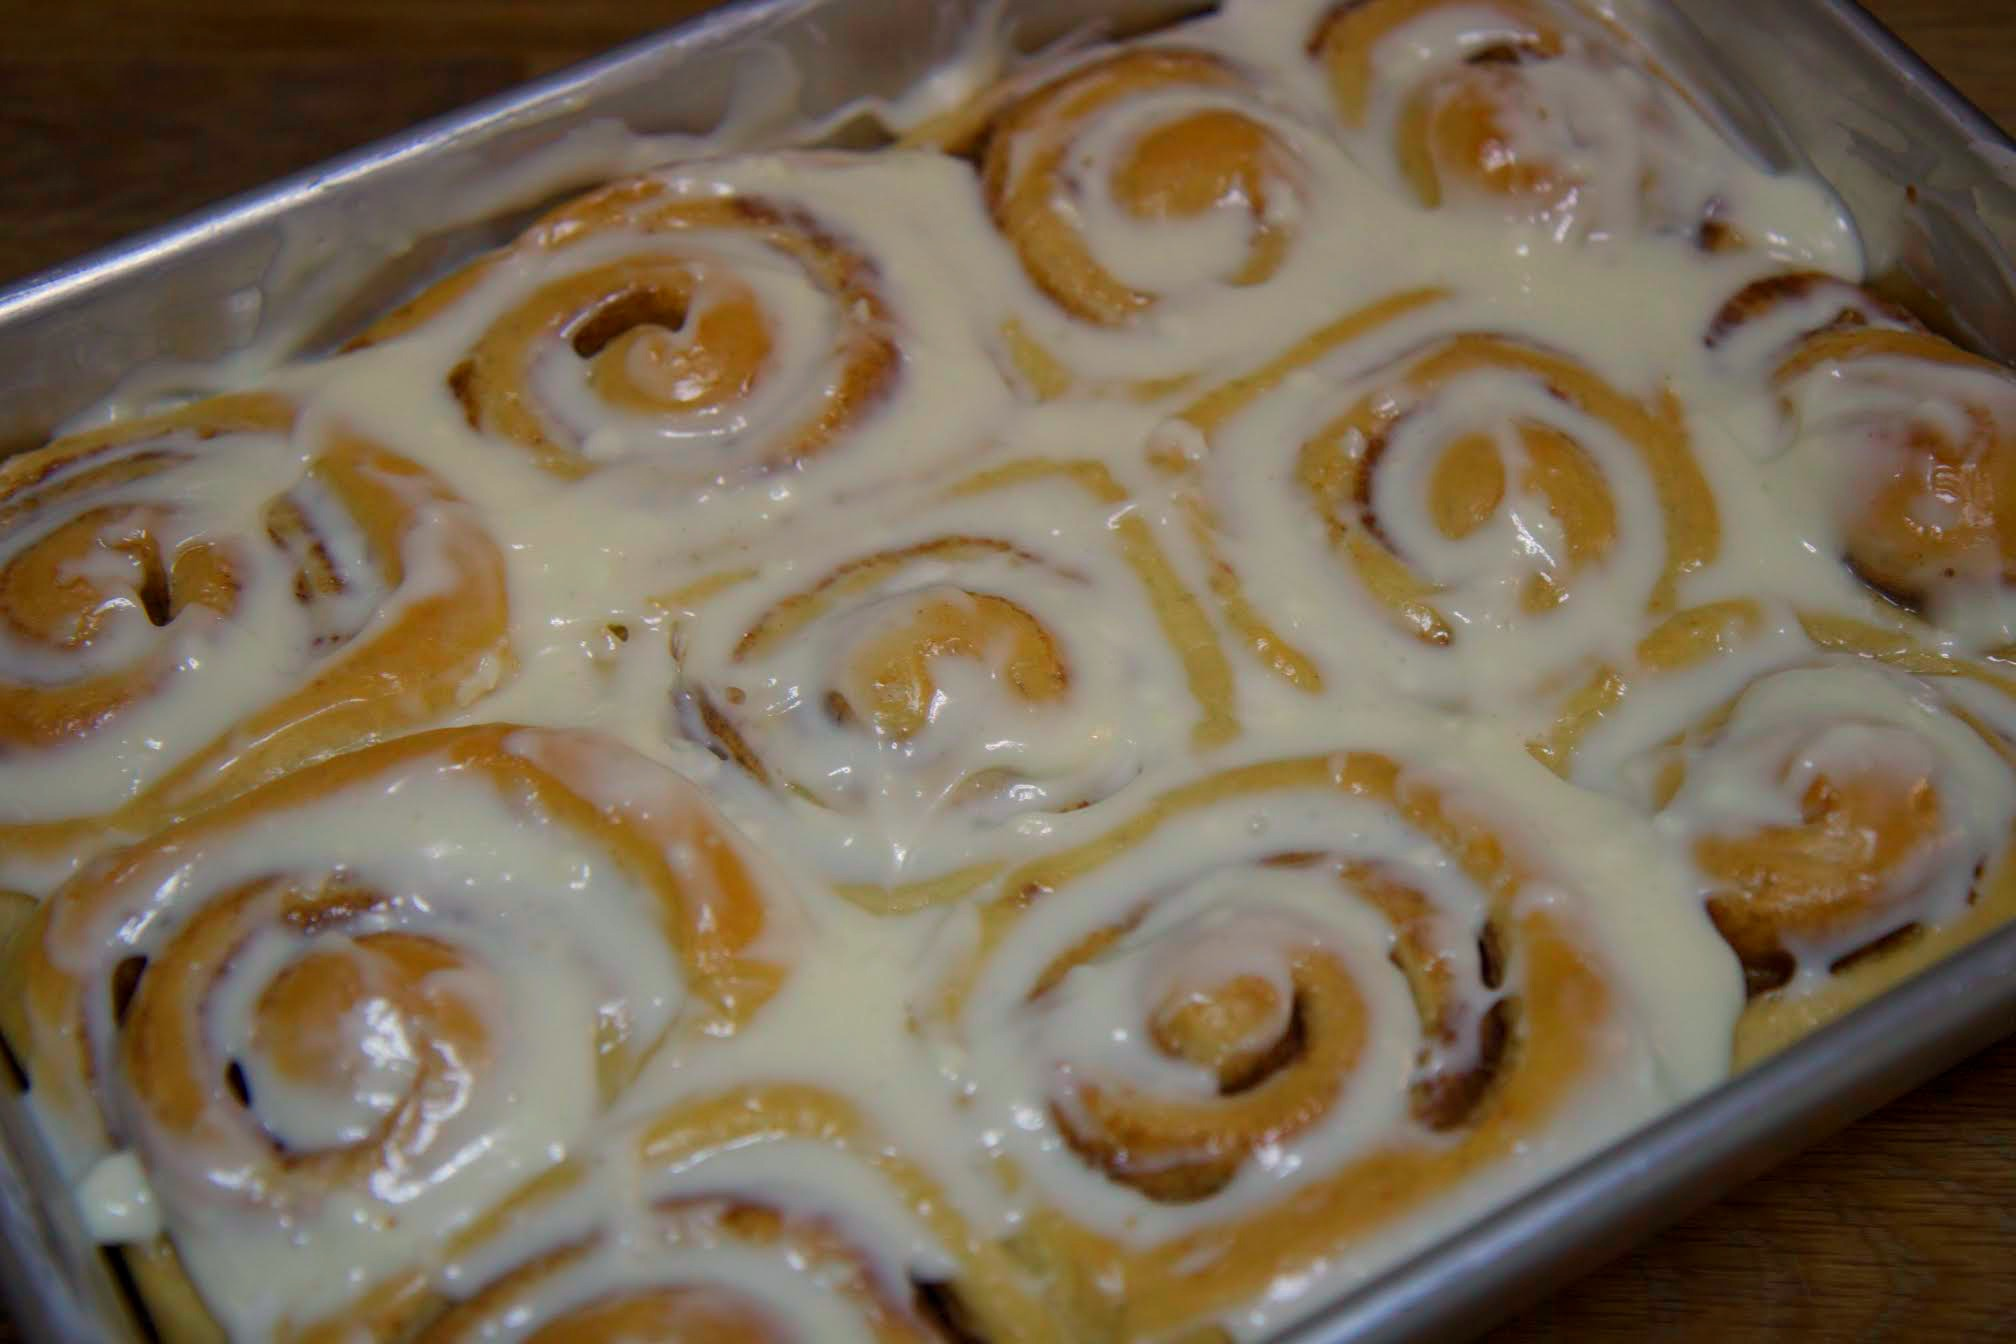 These homemade cinnamon rolls are gooey and delicious, the perfect weekend breakfast treat.